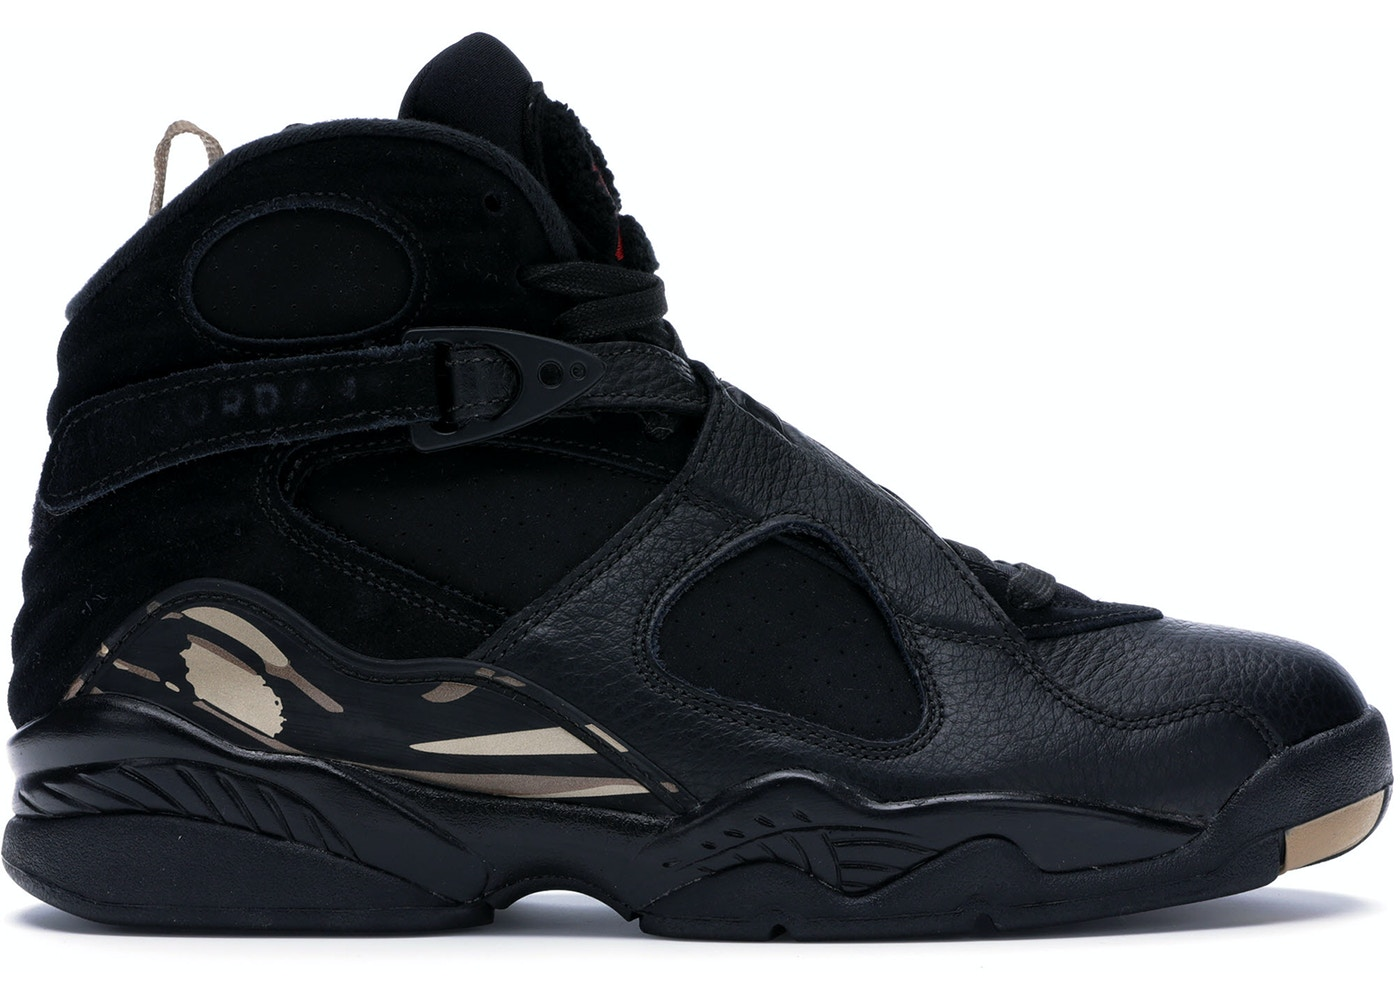 timeless design c0af4 c1c5d Jordan 8 Retro OVO Black